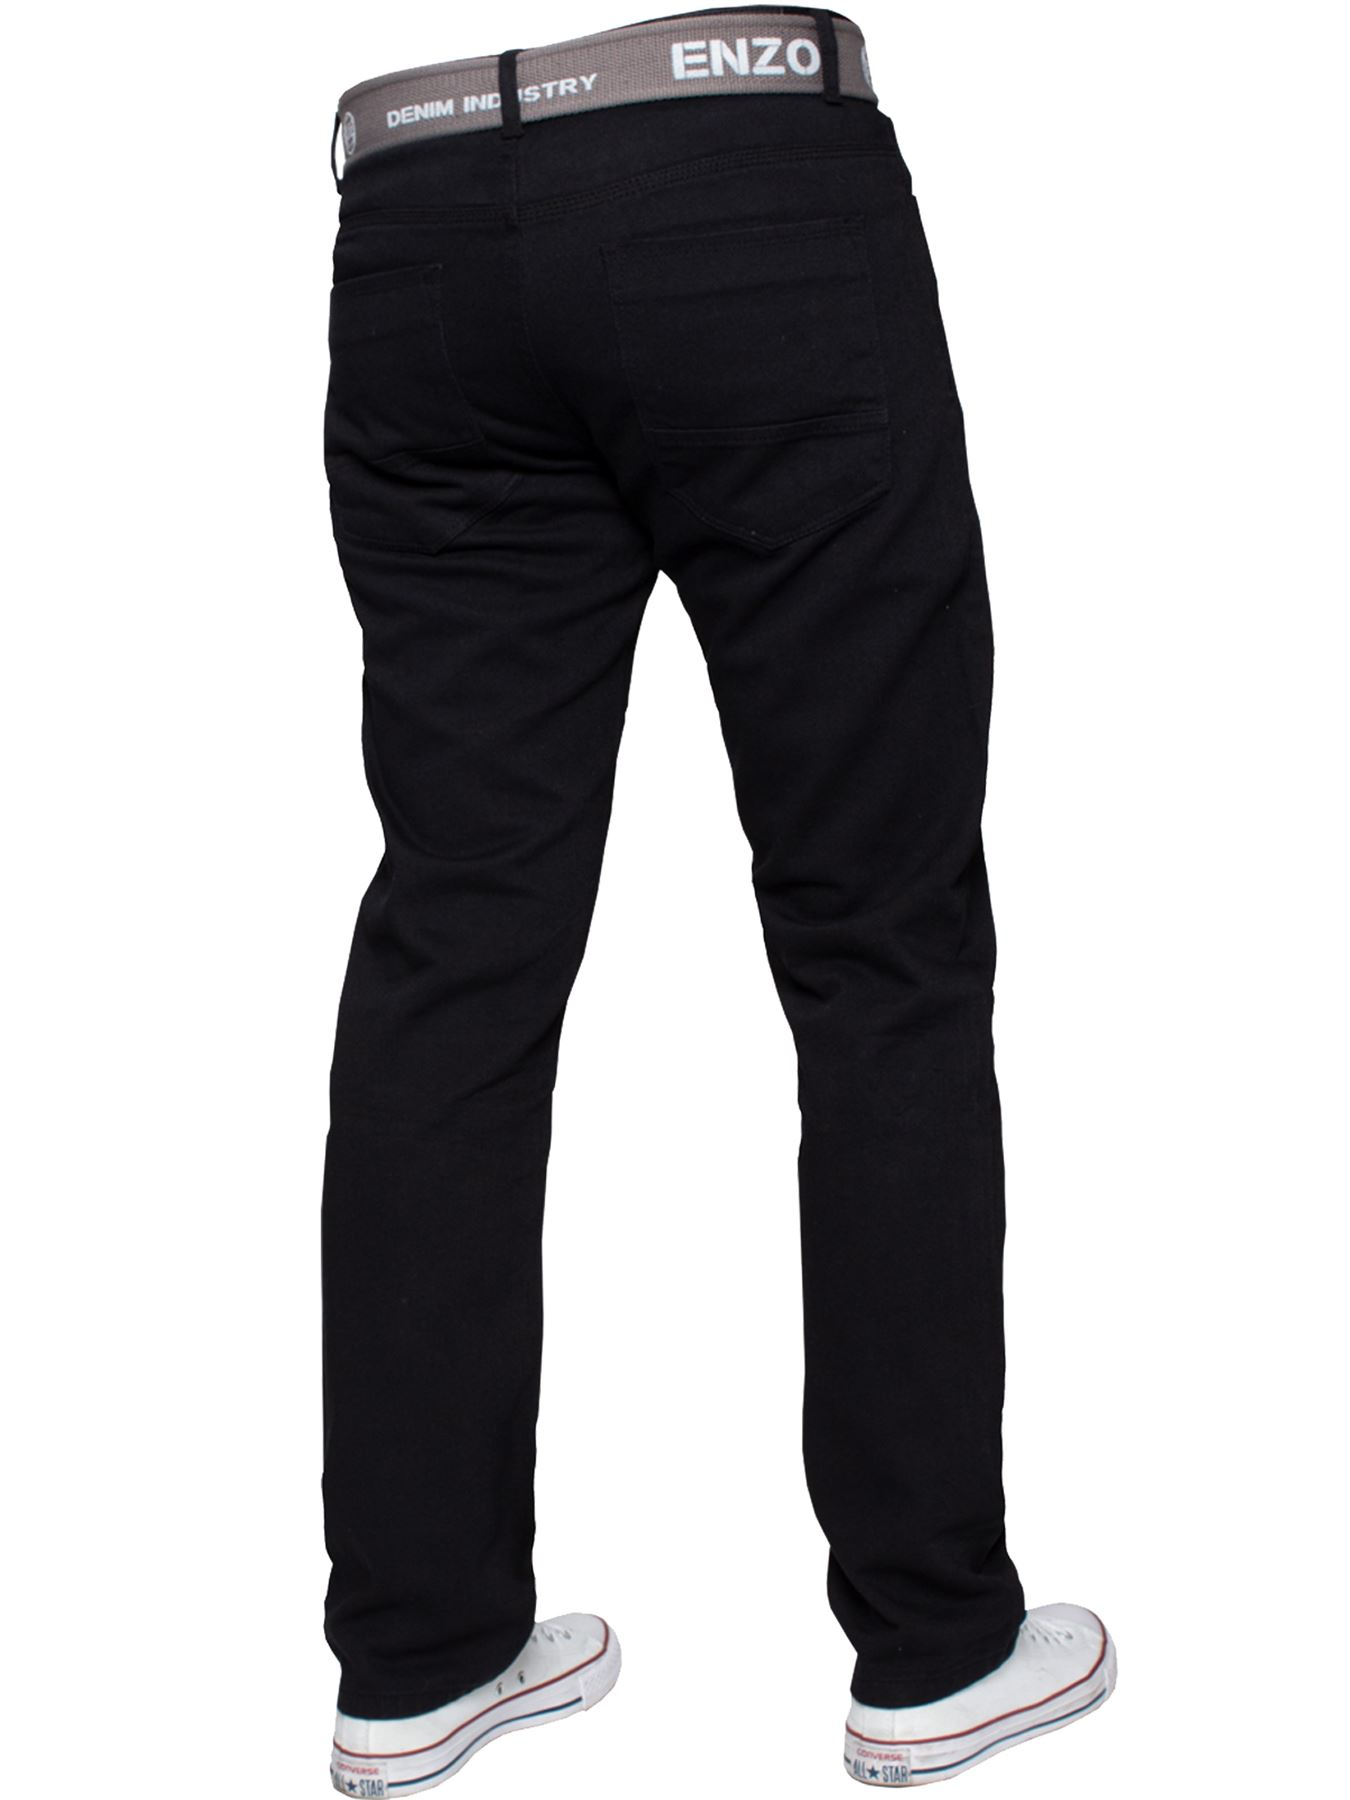 Enzo-Mens-Straight-Leg-Jeans-Regular-Fit-Denim-Pants-Big-Tall-All-Waists-Sizes thumbnail 4